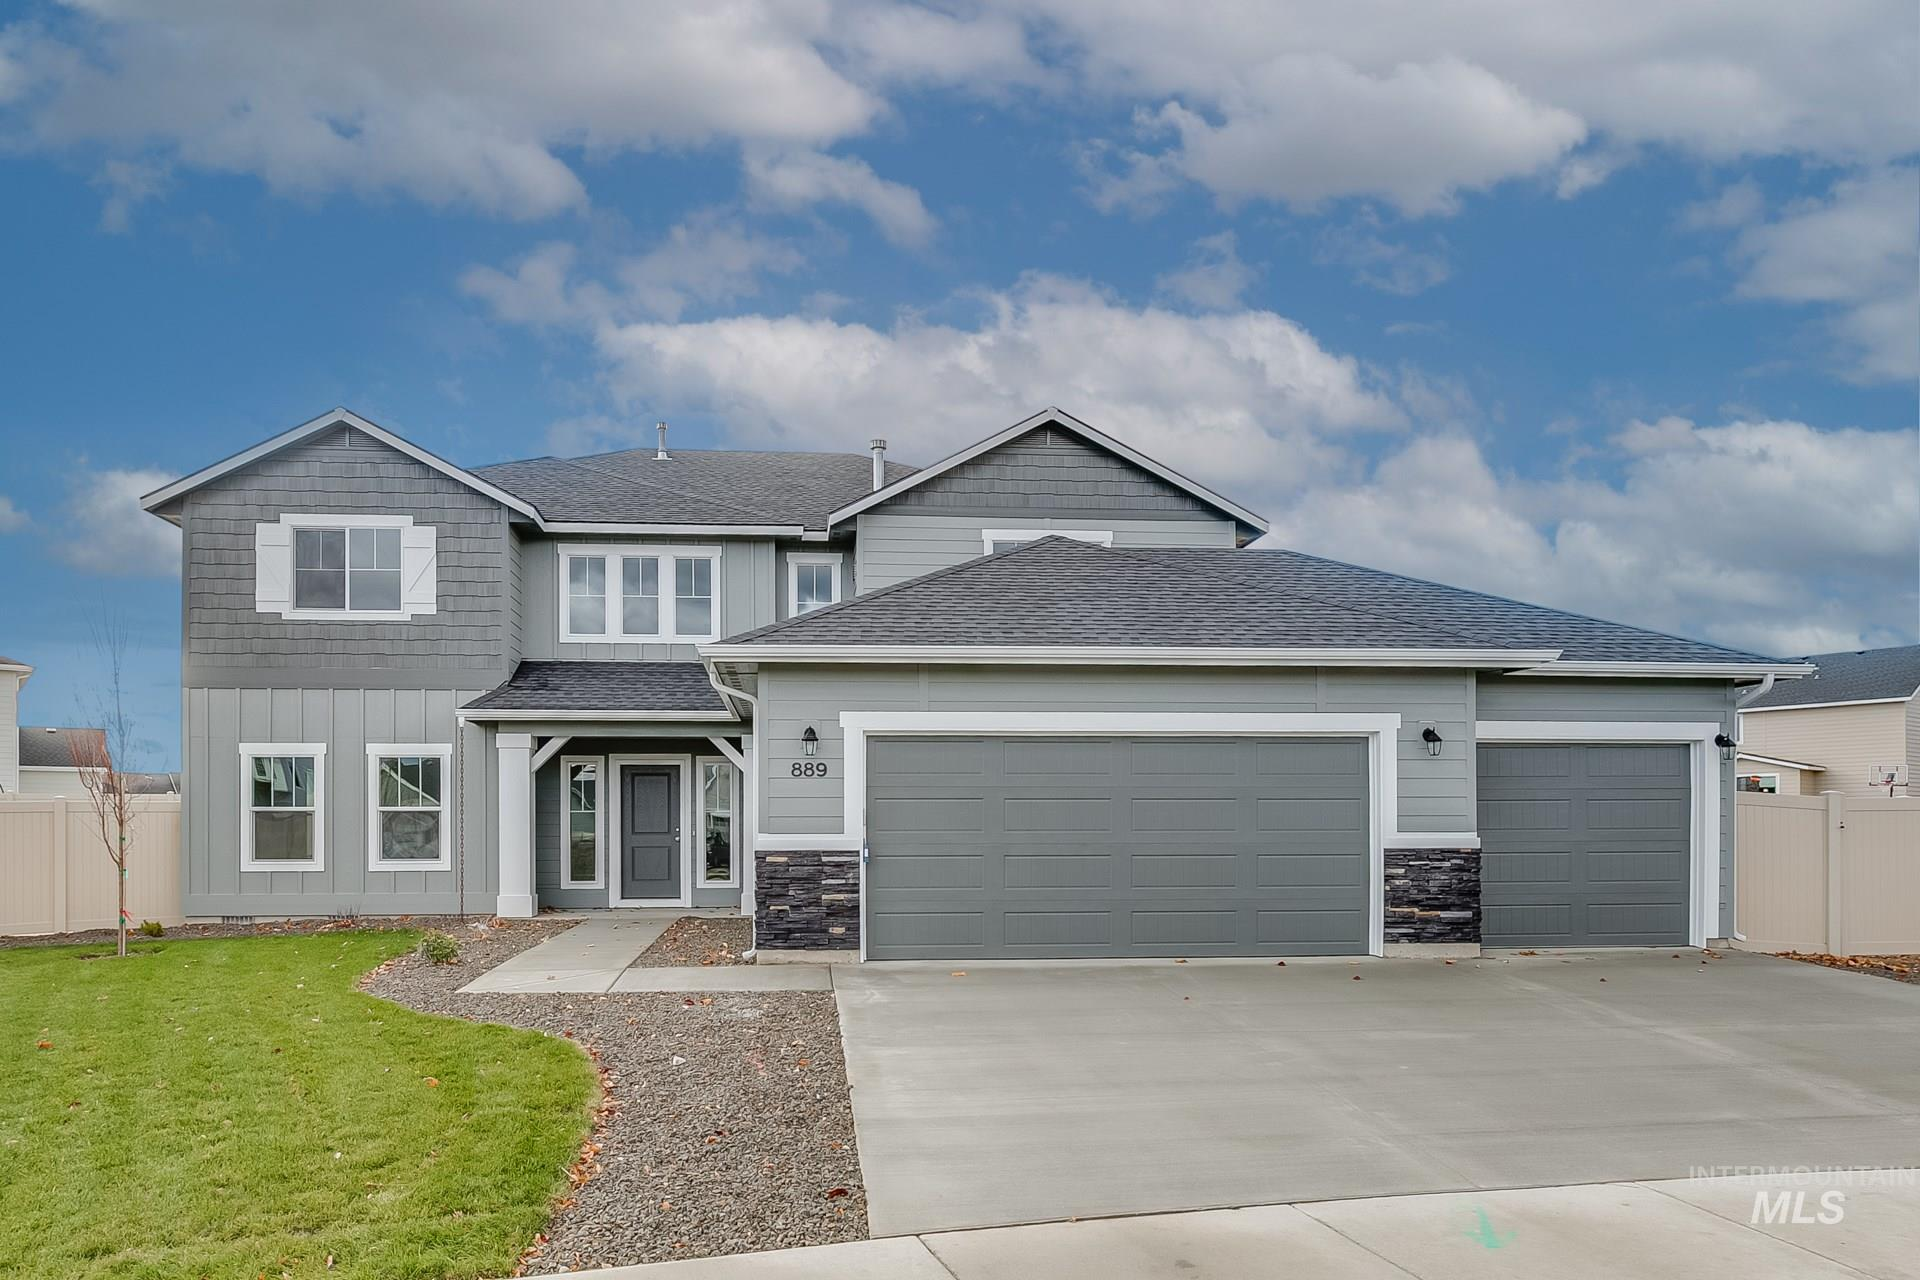 4913 W Sands Basin Dr Property Photo - Meridian, ID real estate listing